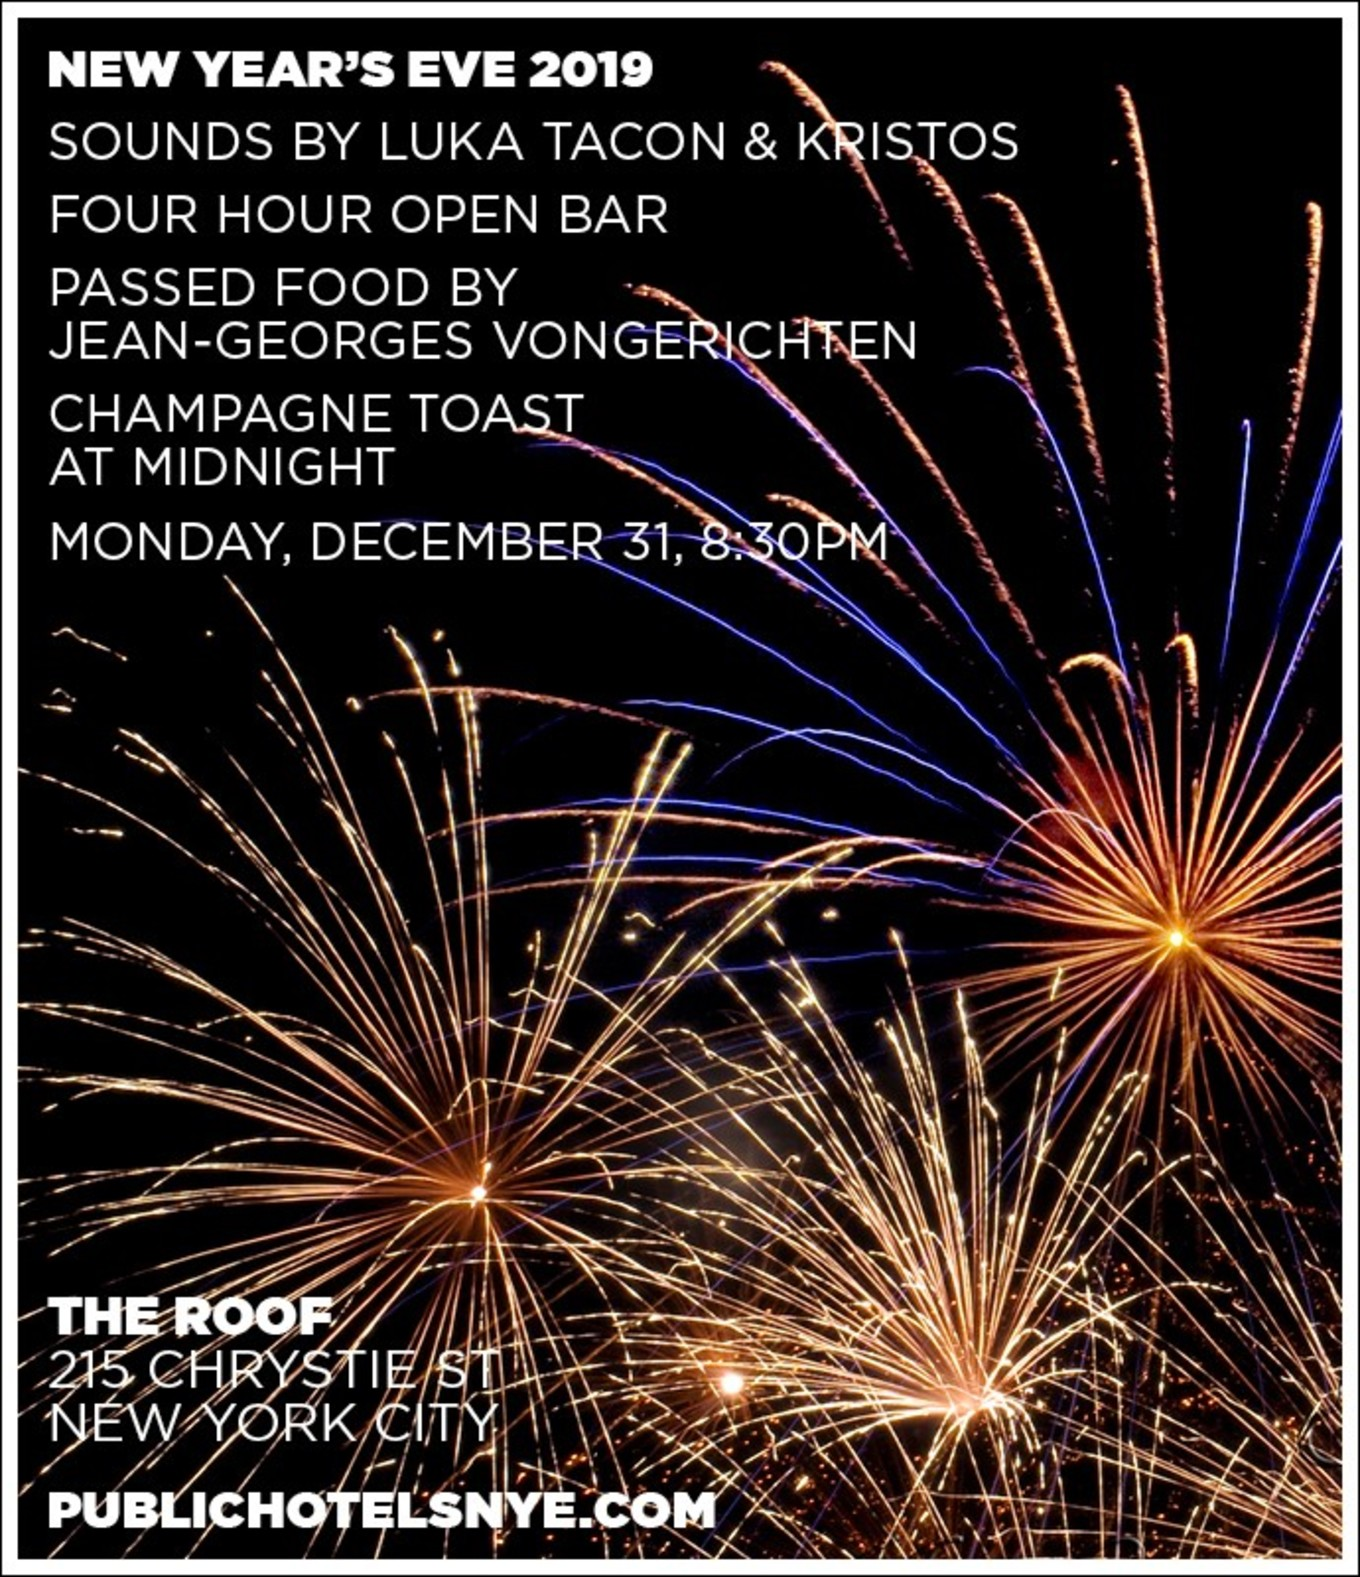 New Year's Eve 2019 at THE ROOF - Tickets - THE ROOF at Public Hotel